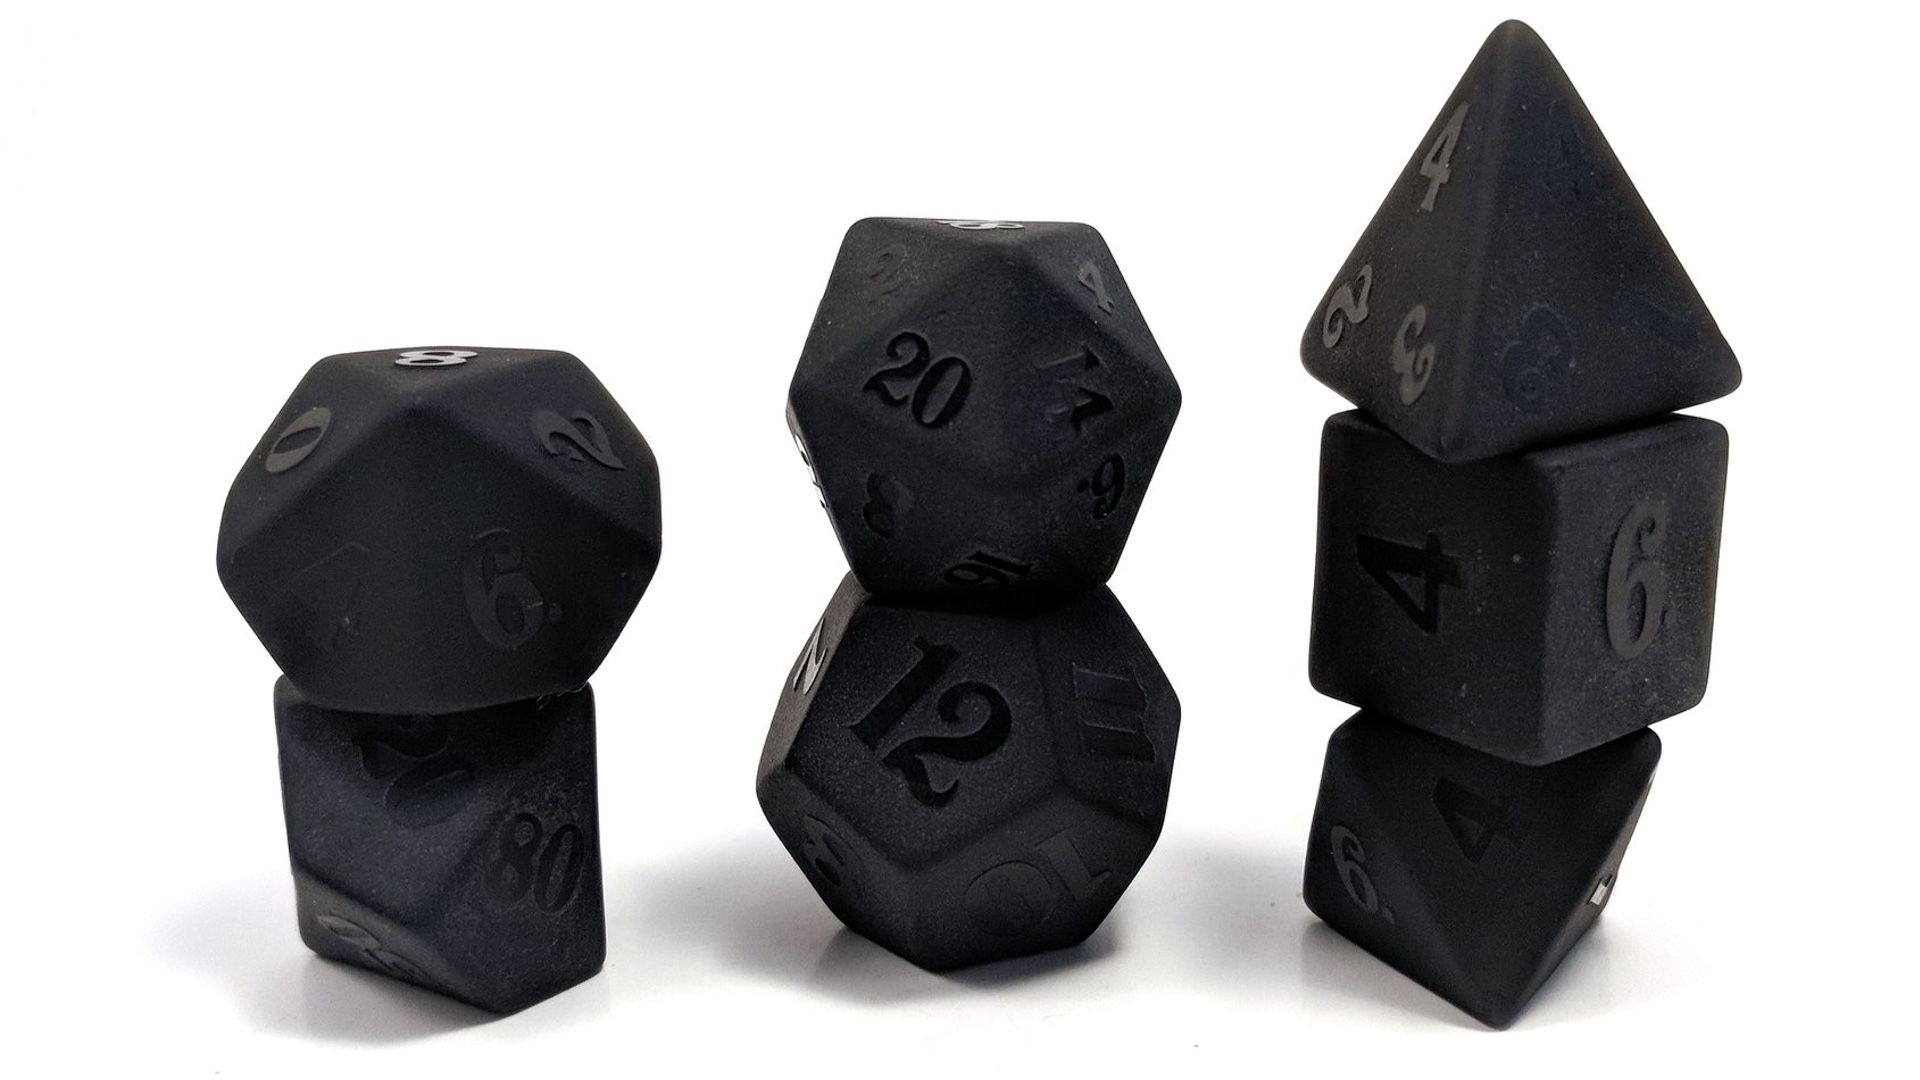 looking-for-some-awesome-and-unique-dungeons-dragons-dice-check-this-out-social.jpg